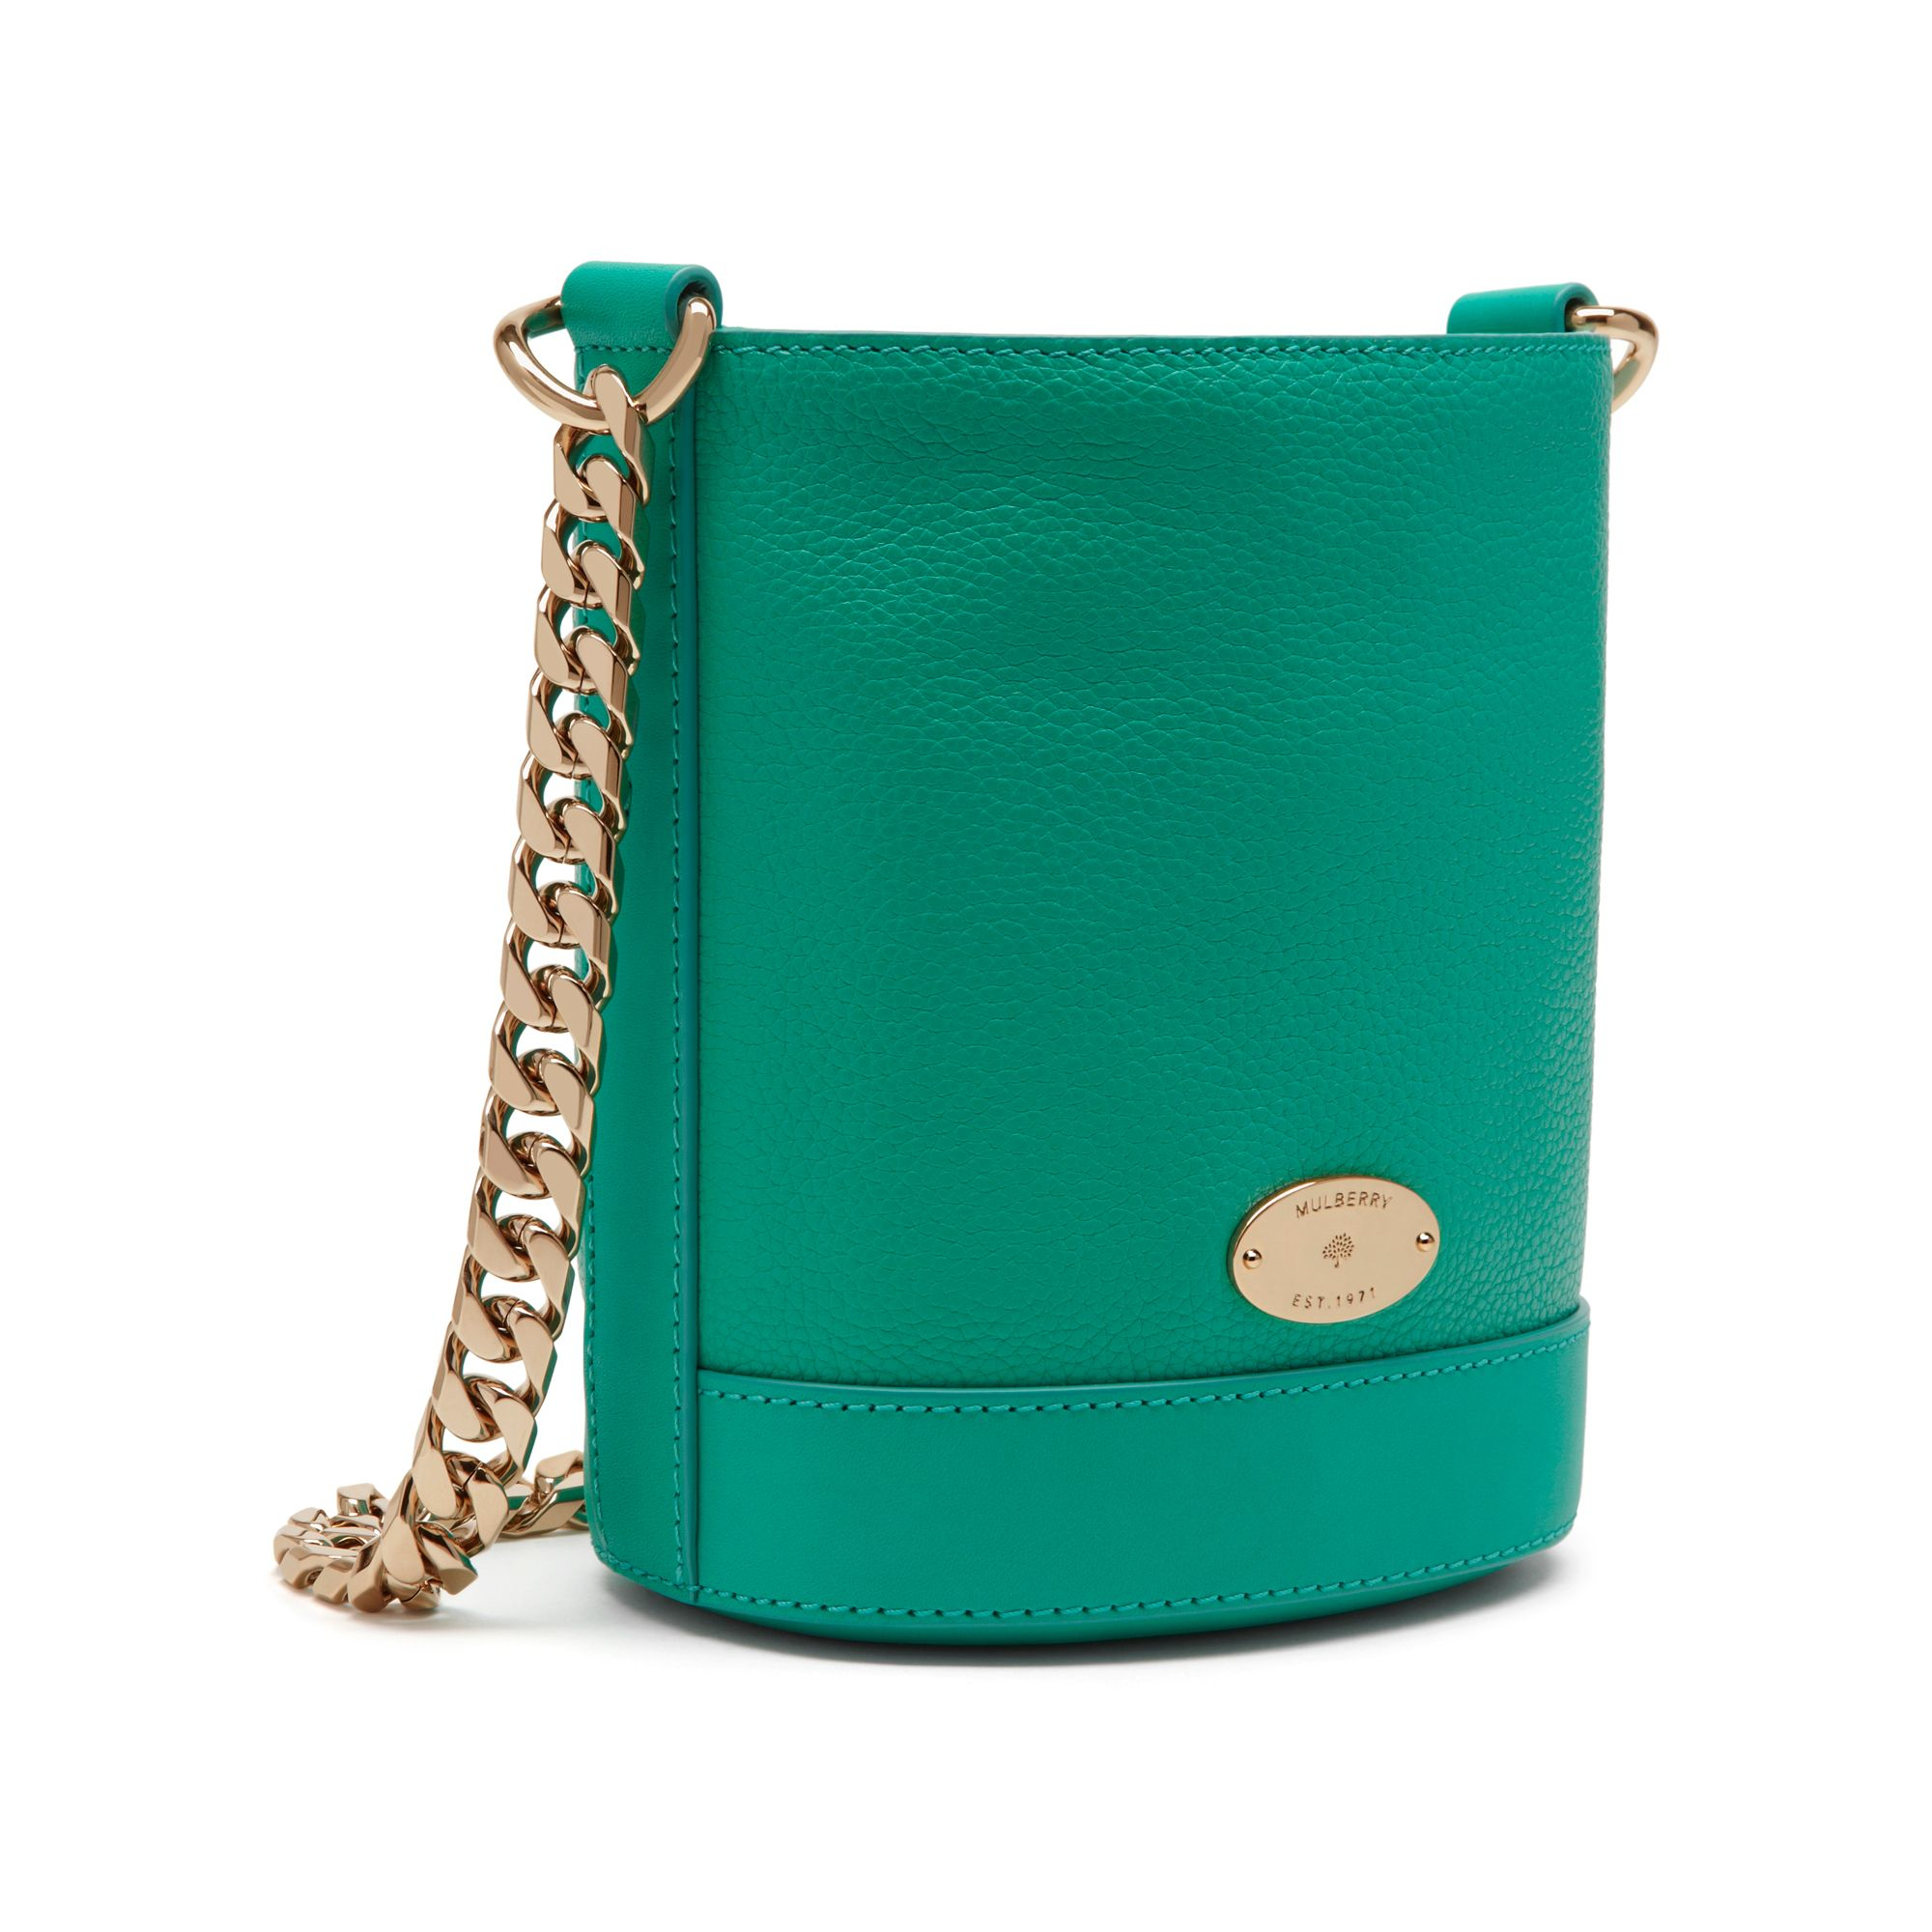 ... where to buy lyst mulberry mini jamie leather bag in green db42b ee396 8f946ecd579fb